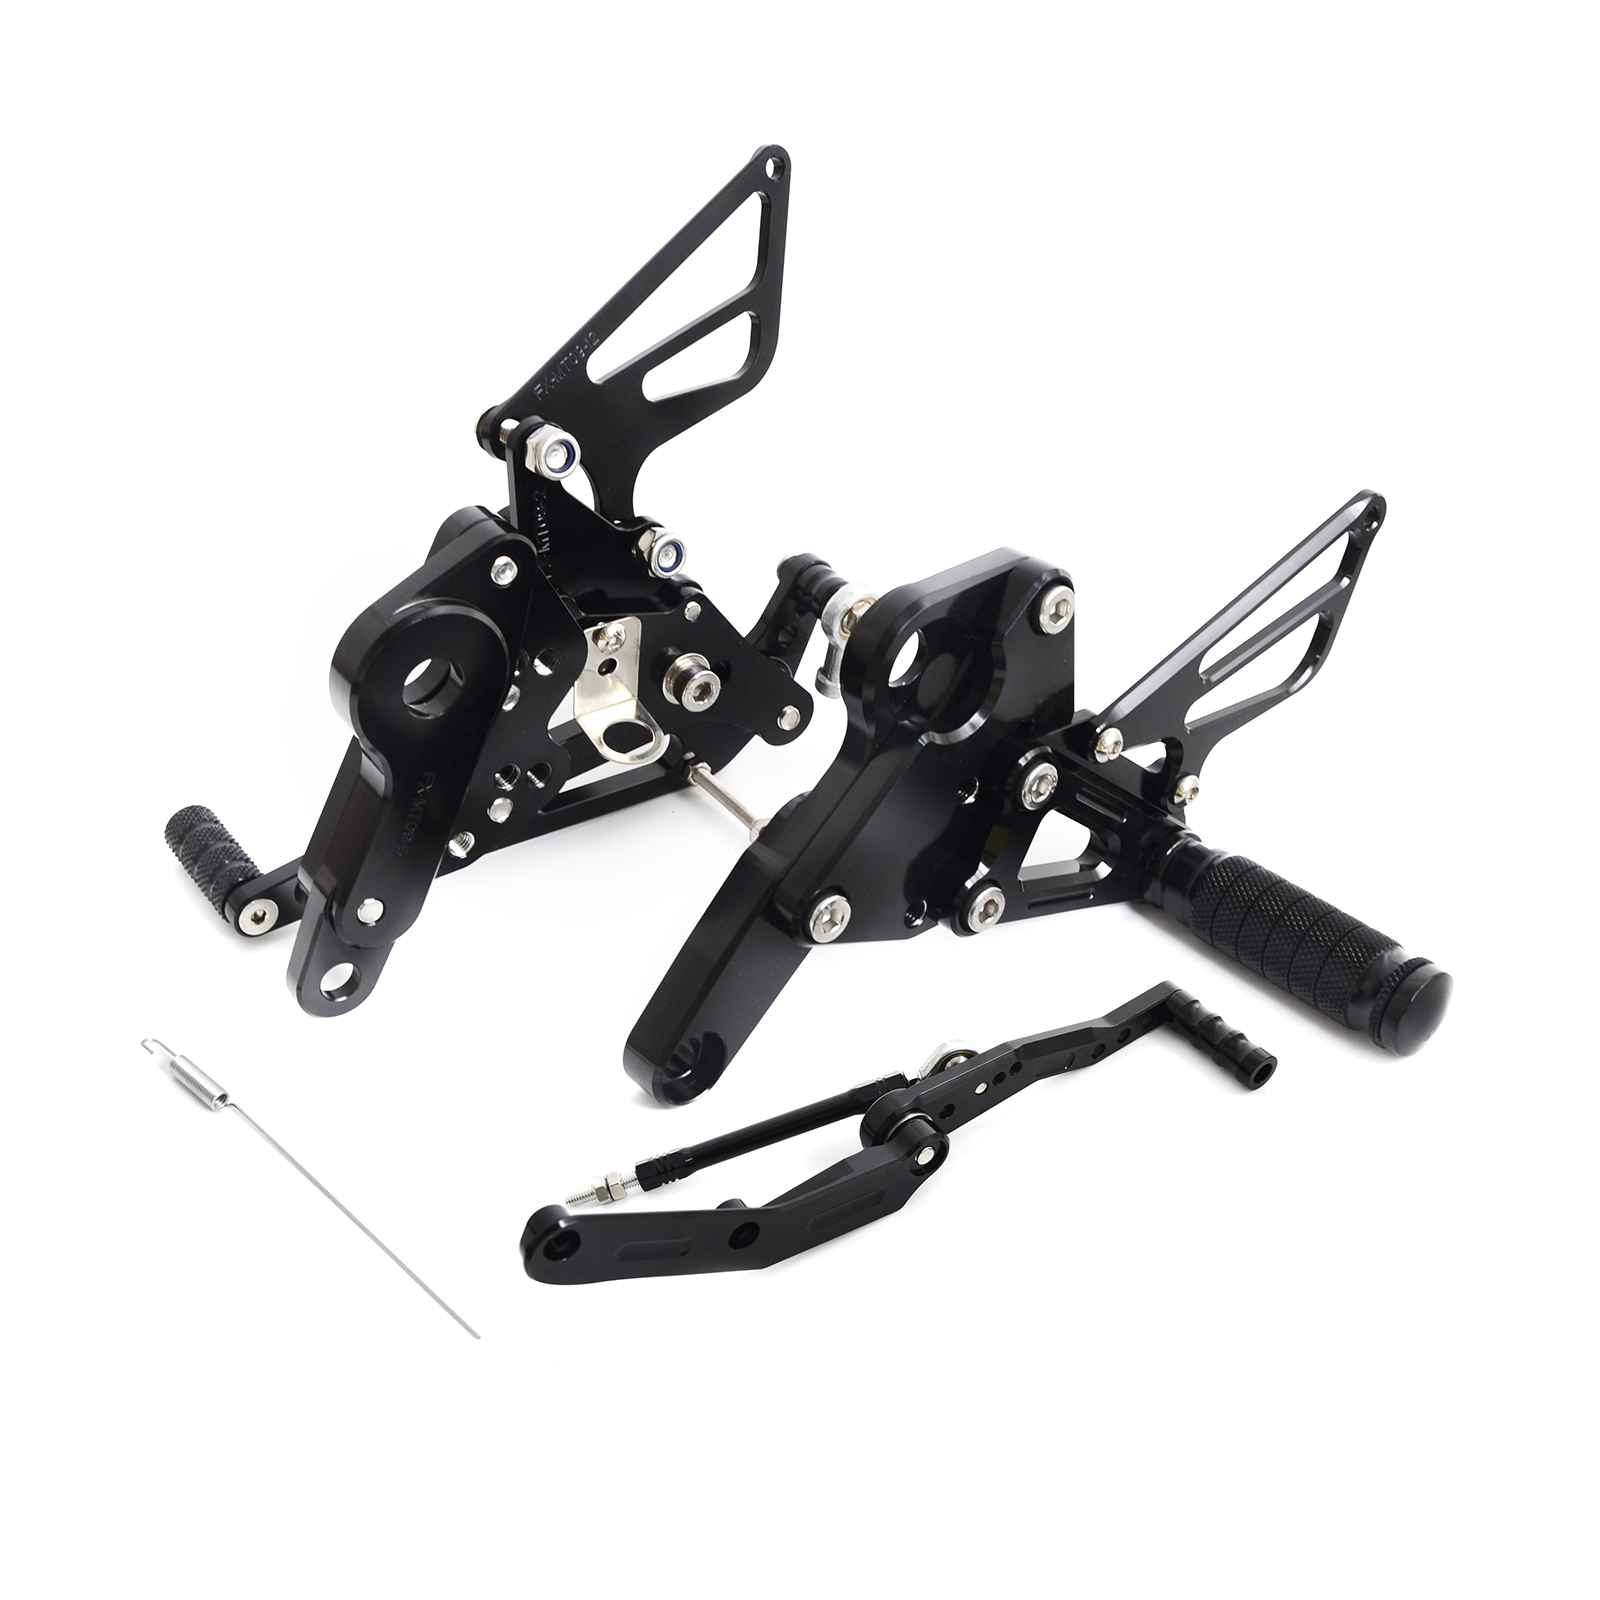 NICECNC CNC Adjustable Rearsets Foot Peg Footrest Footpeg For For Yamaha MT 09 MT09 FZ09 FZ 09 2013 2014 2015 2016